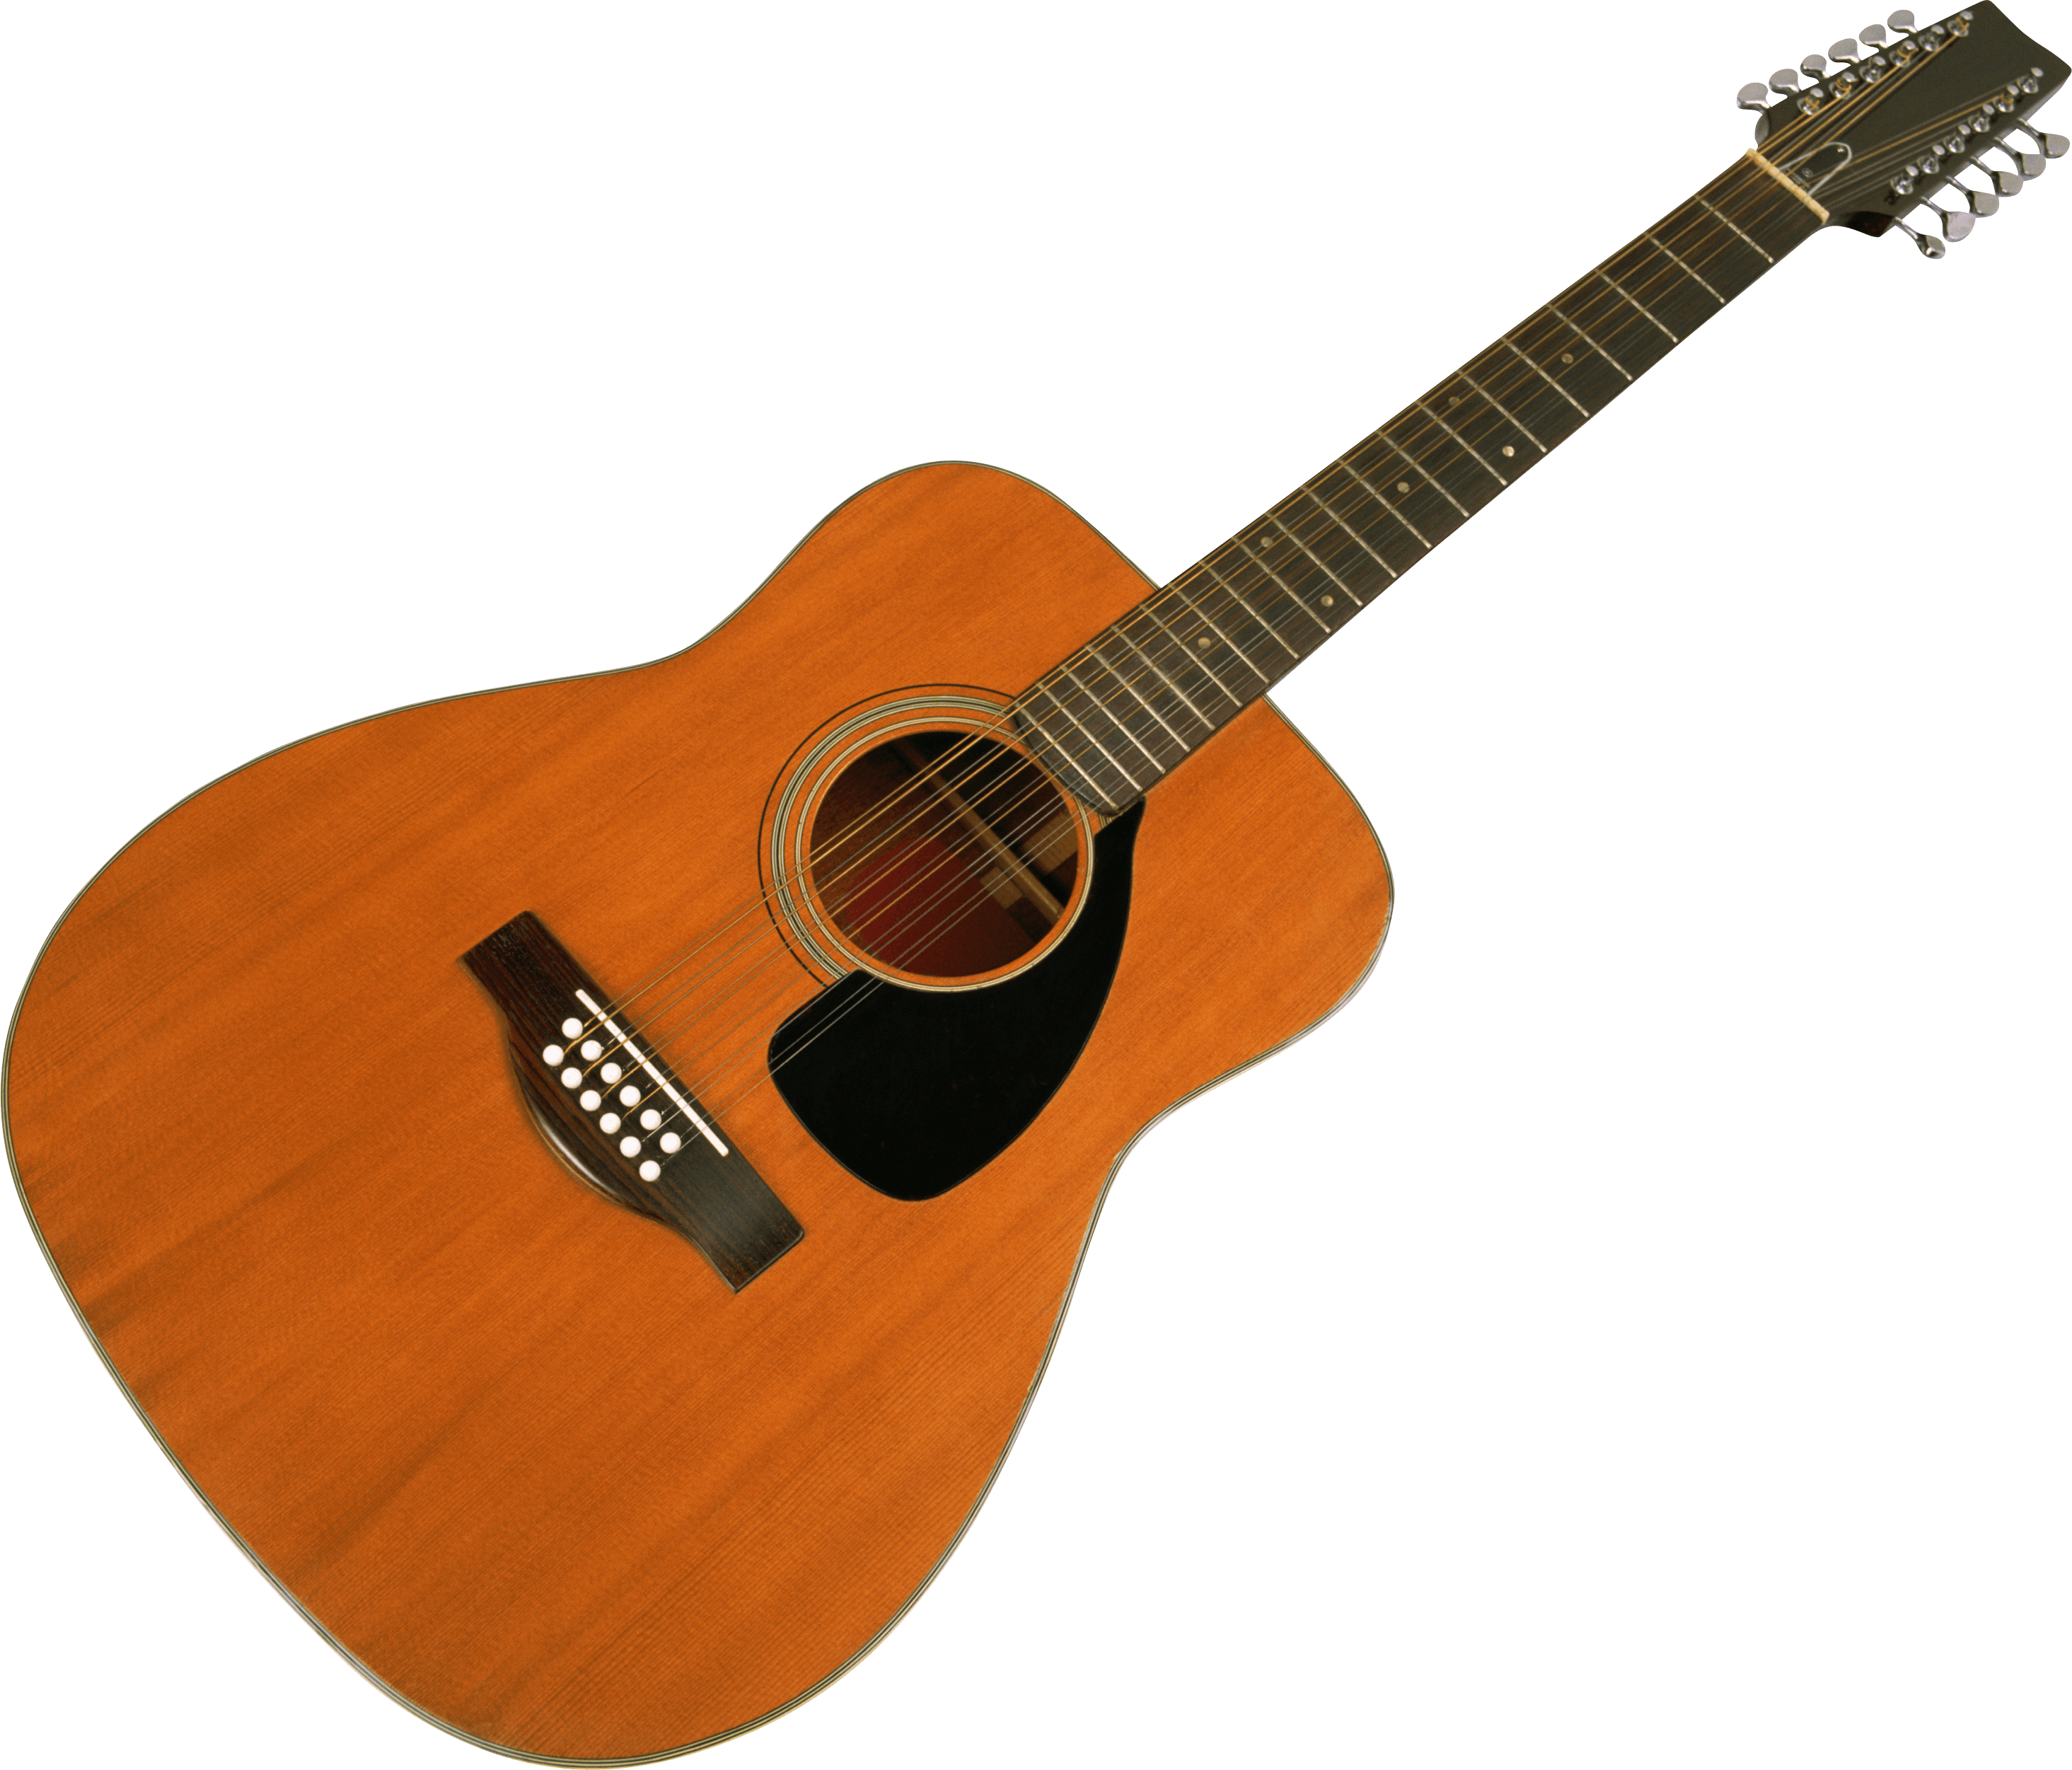 Best Free Guitar Png Image image #46312